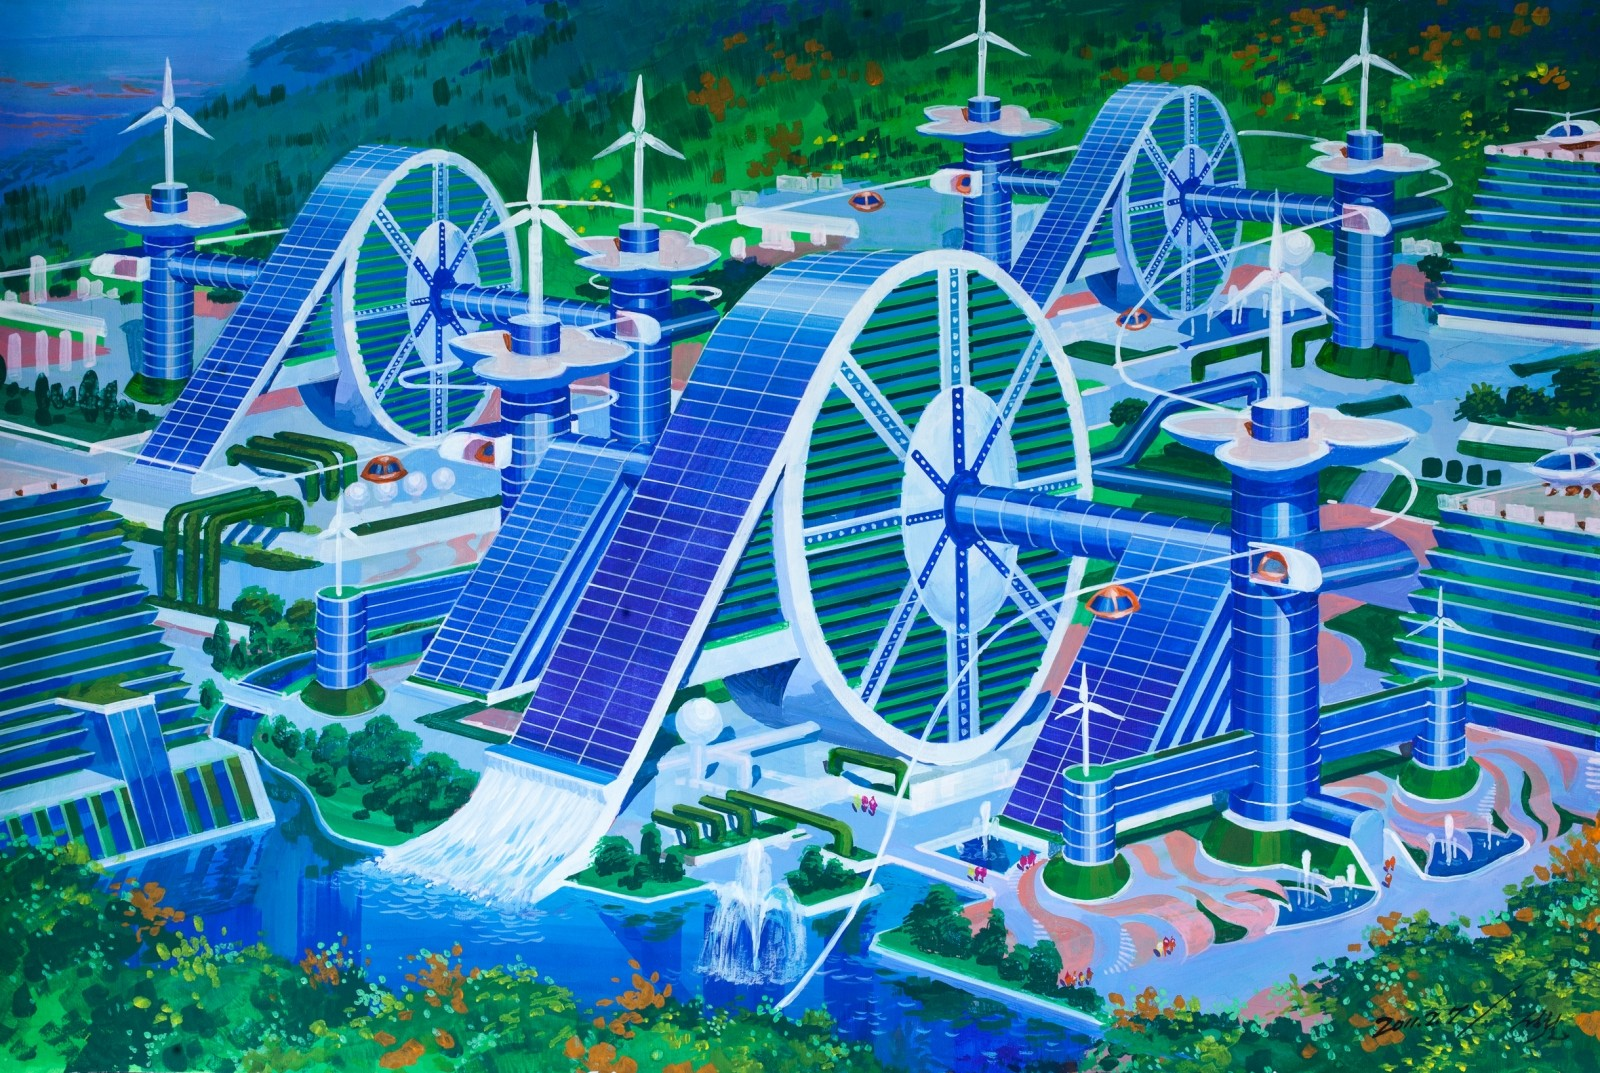 Yesterday's Future, Today: What's it Like to Work as an Architect in North Korea?, A silk co-operative clad with acres of PV solar panels, one of several illustrations exhibited at the Korean Pavilion in Venice. Image Courtesy of Koryo Tours